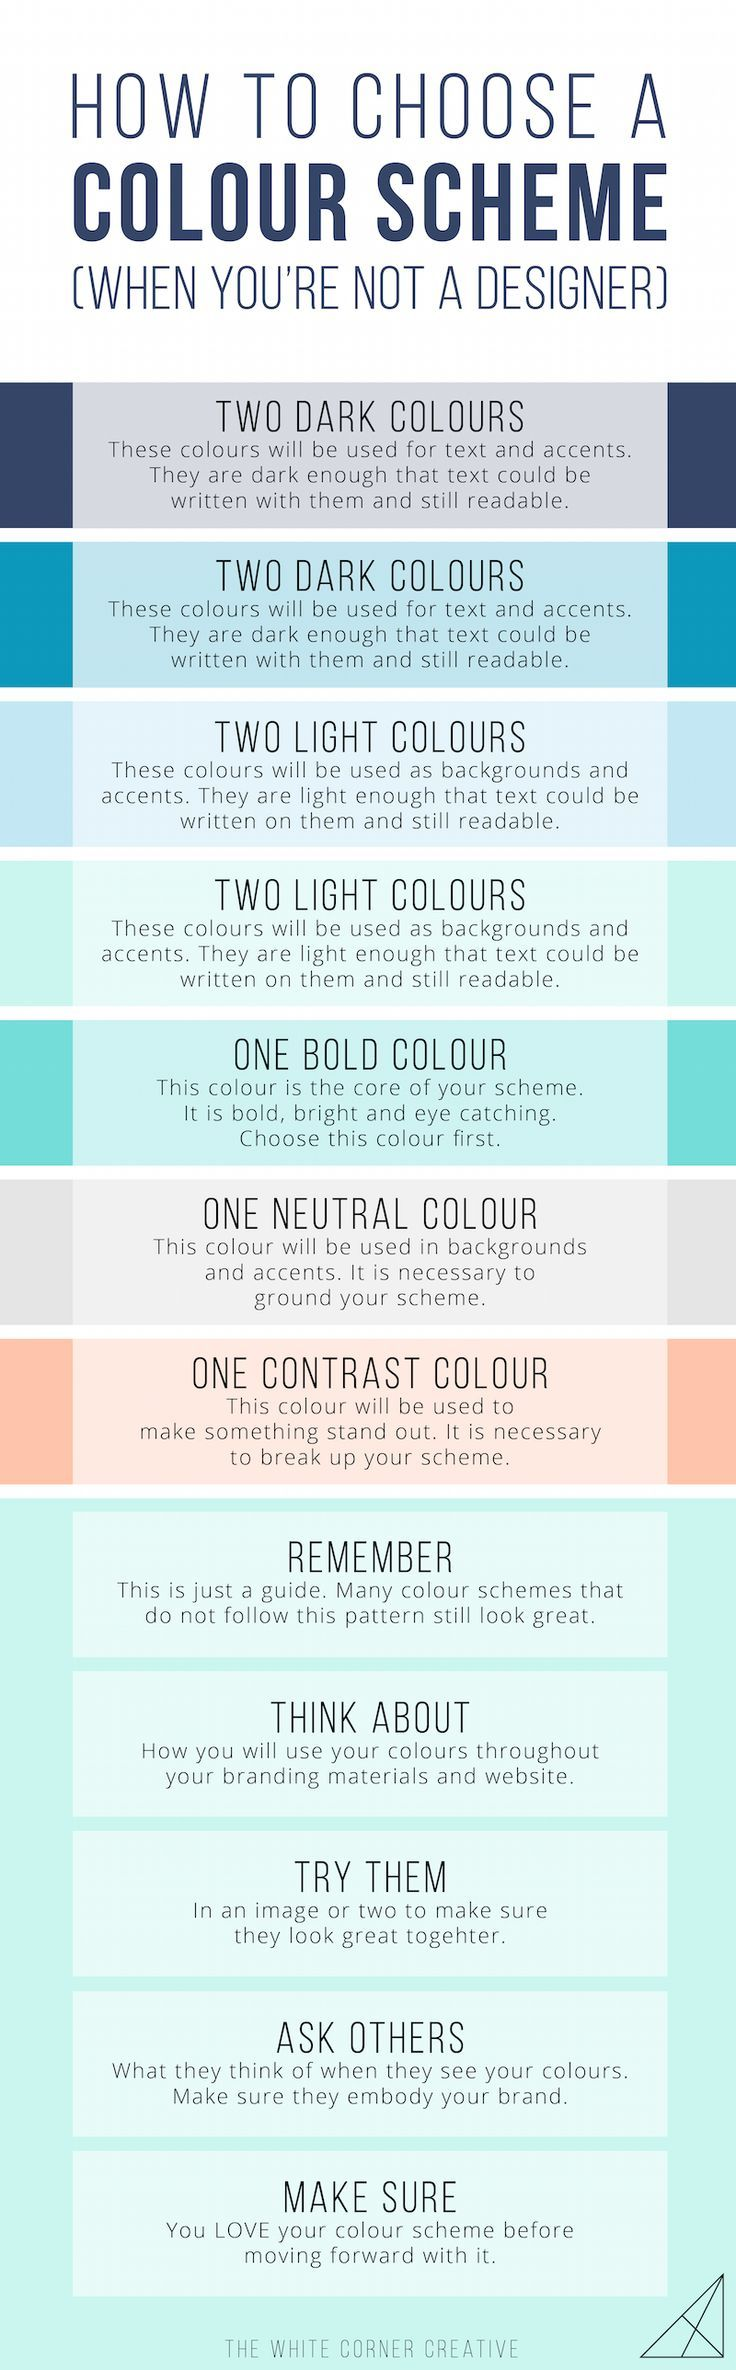 How to Choose a Colour Scheme (When You're not a Designer) - The White Corner Creative